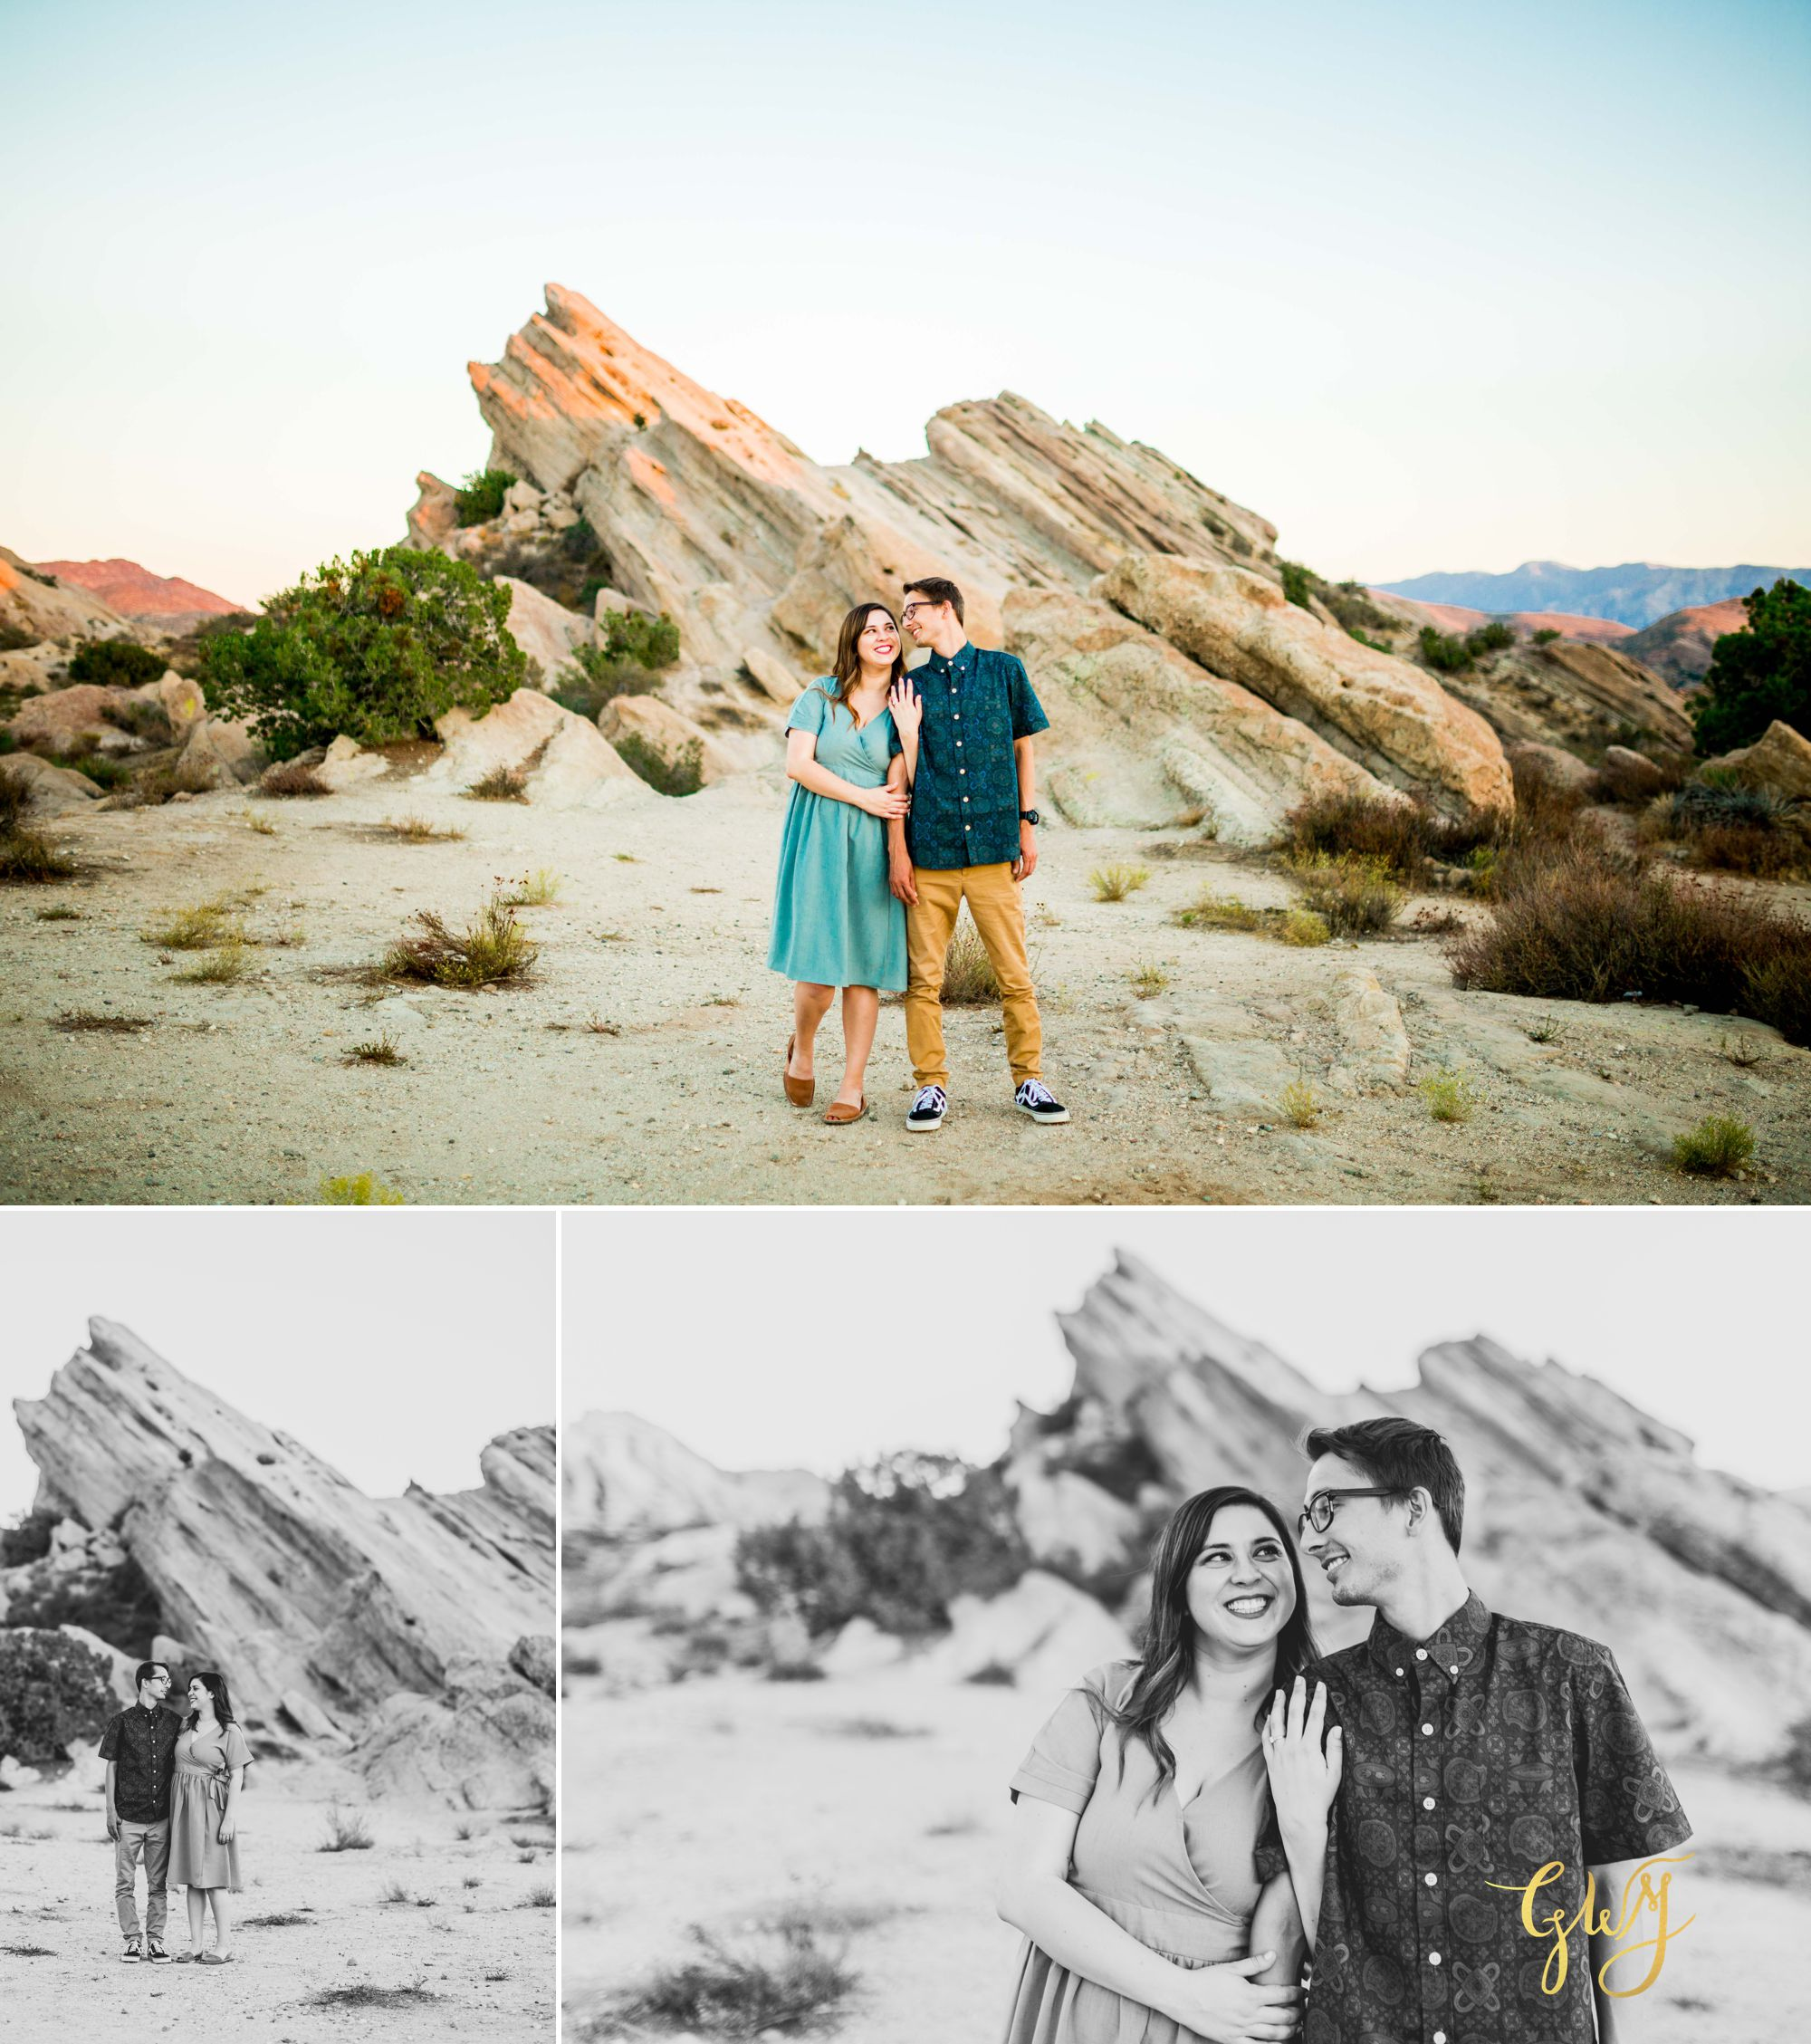 KJ + Maddie Vasquez Rocks Adventurous Hiking Outdoors Engagement Session by Glass Woods Media 12.jpg